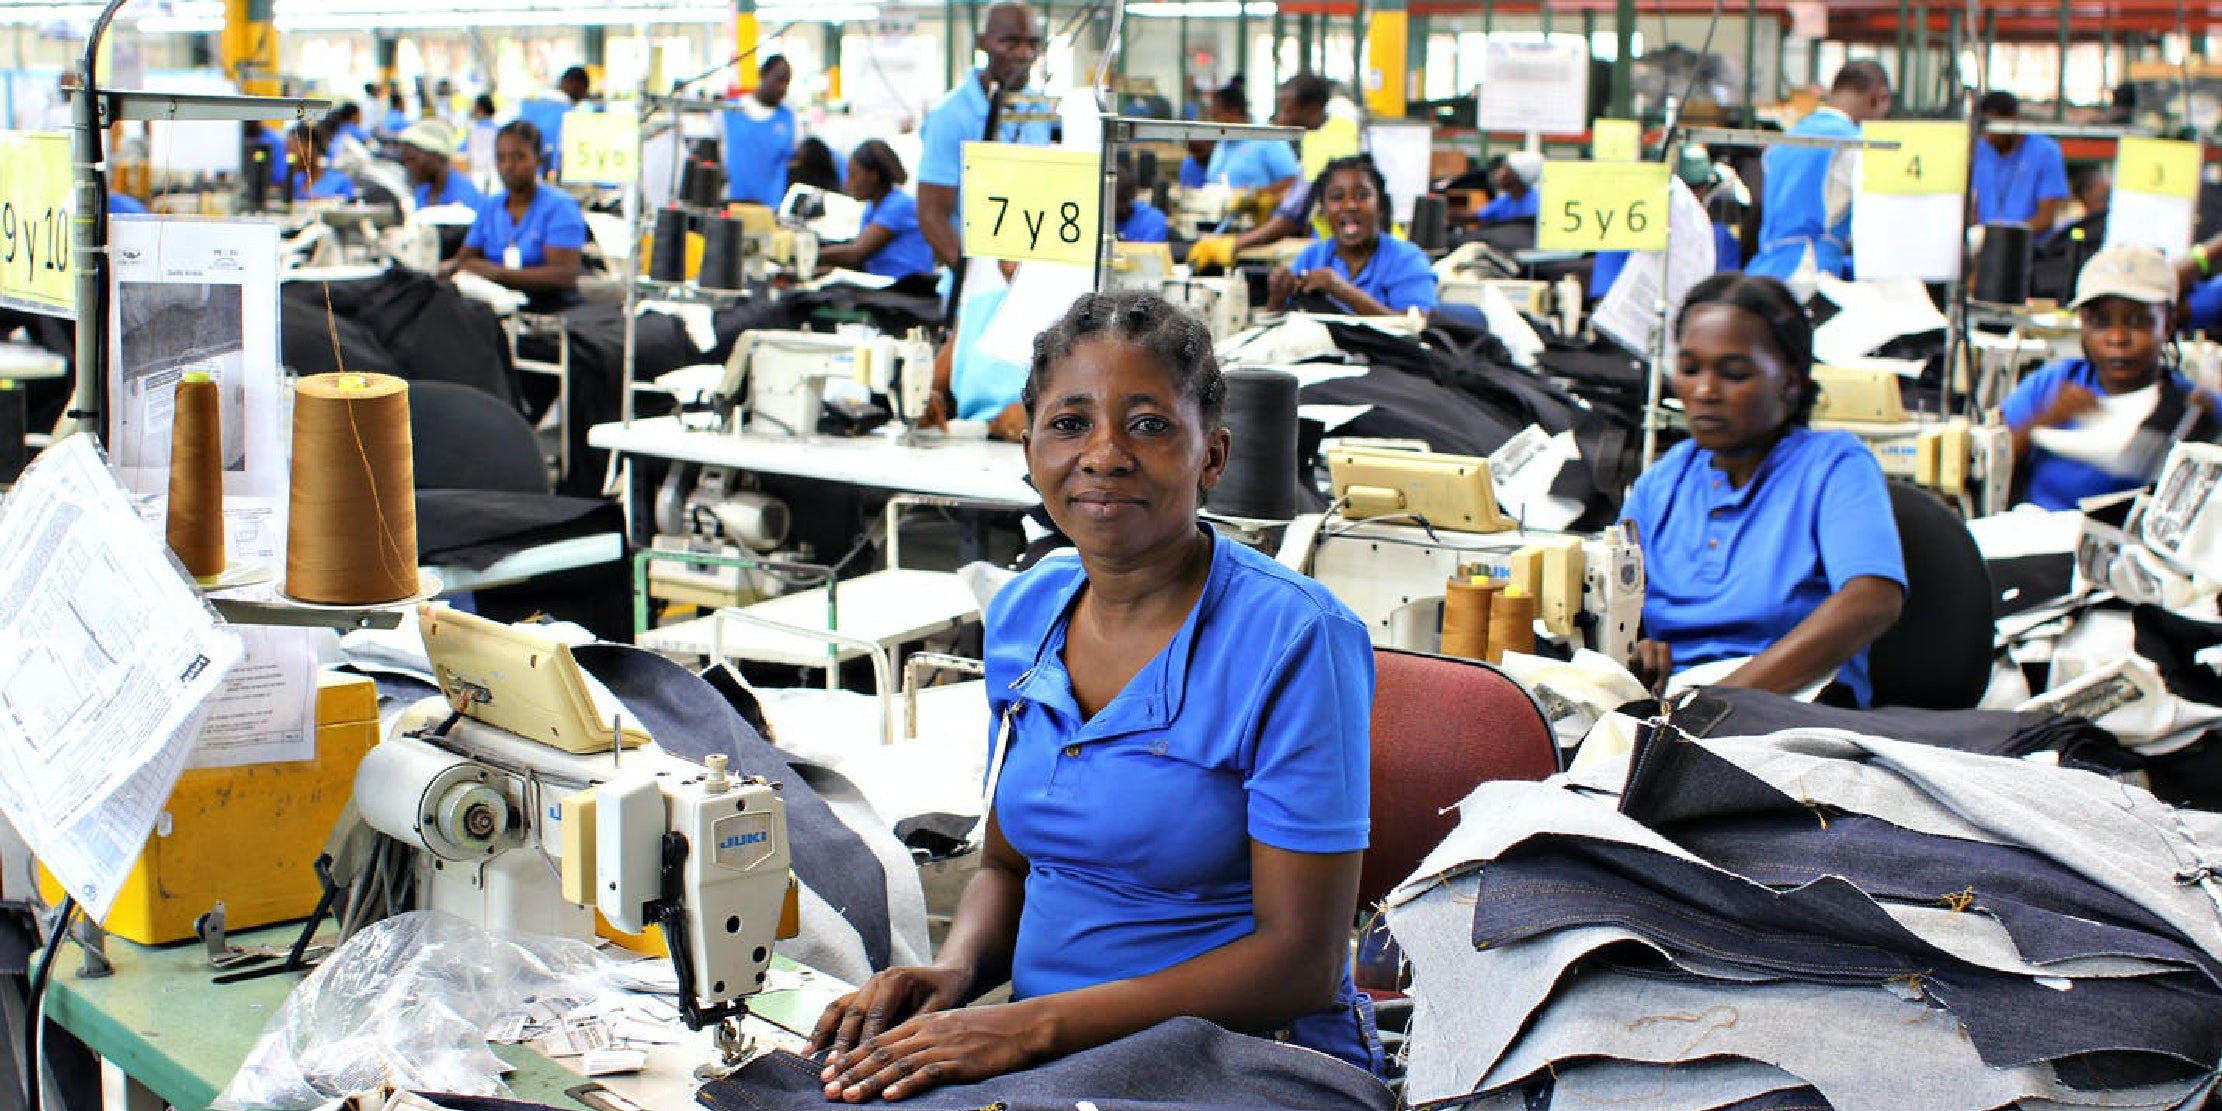 Levi's workers in India